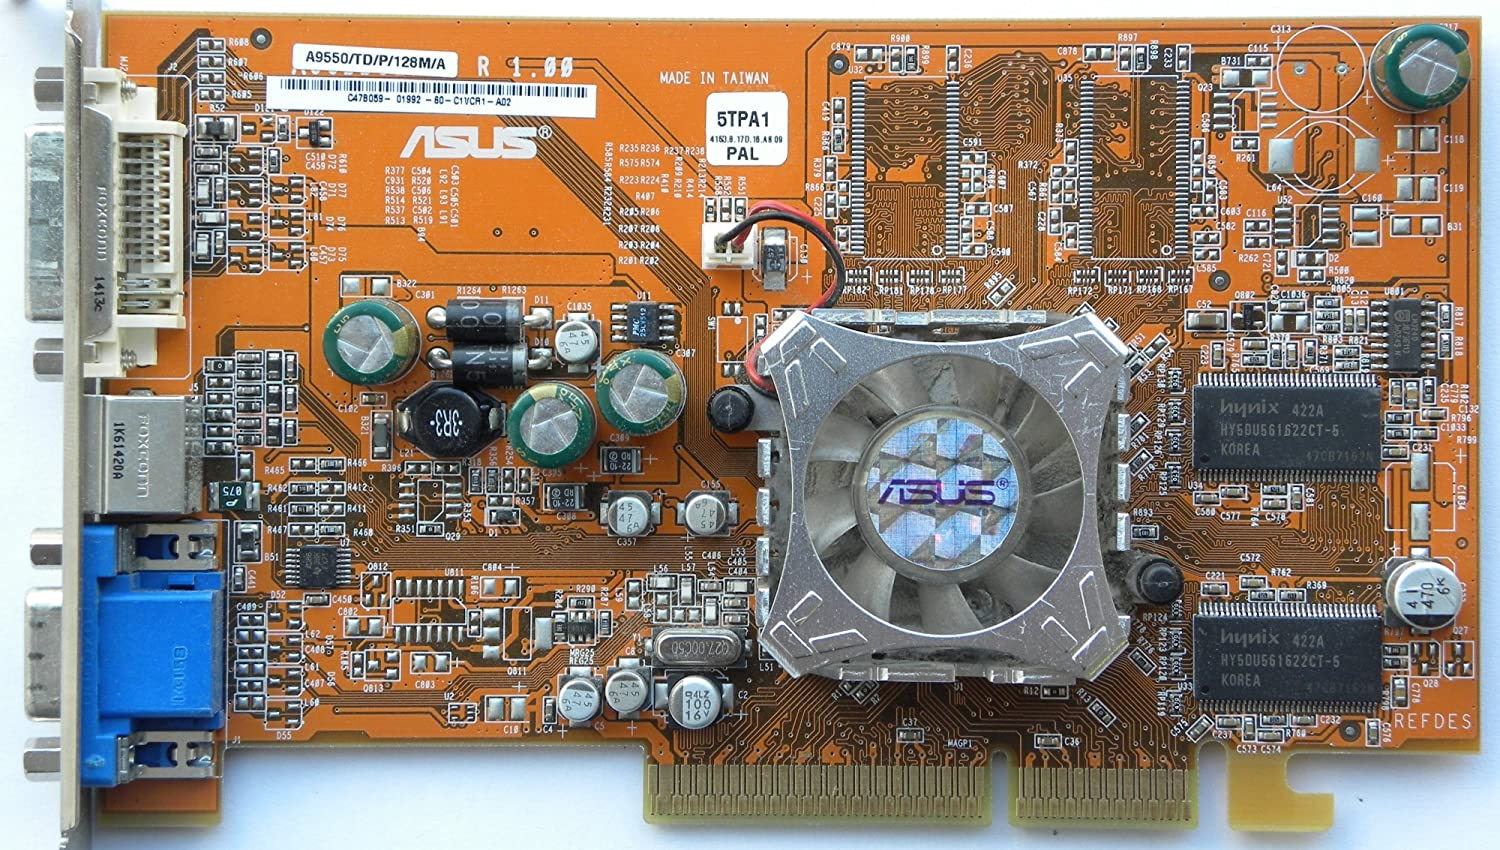 DRIVERS: ASUS A9550GE TD 128M A